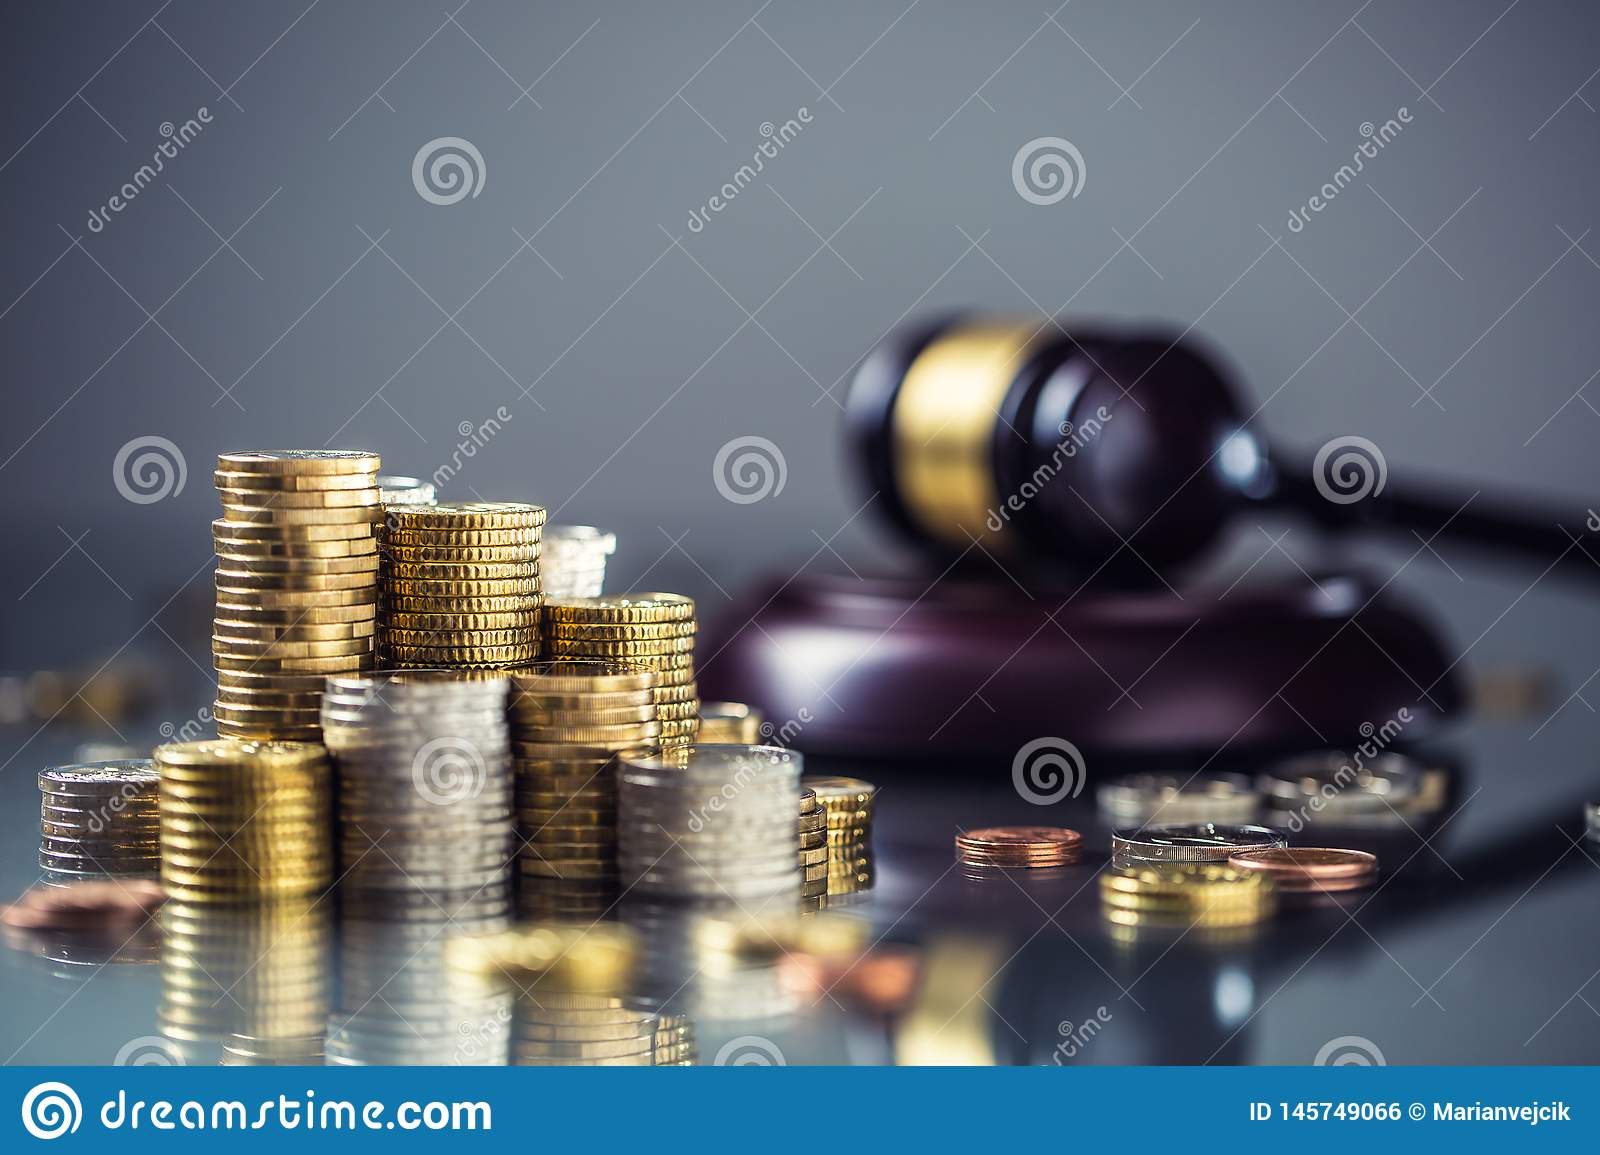 Towers with euro coins and justice hammer in the background